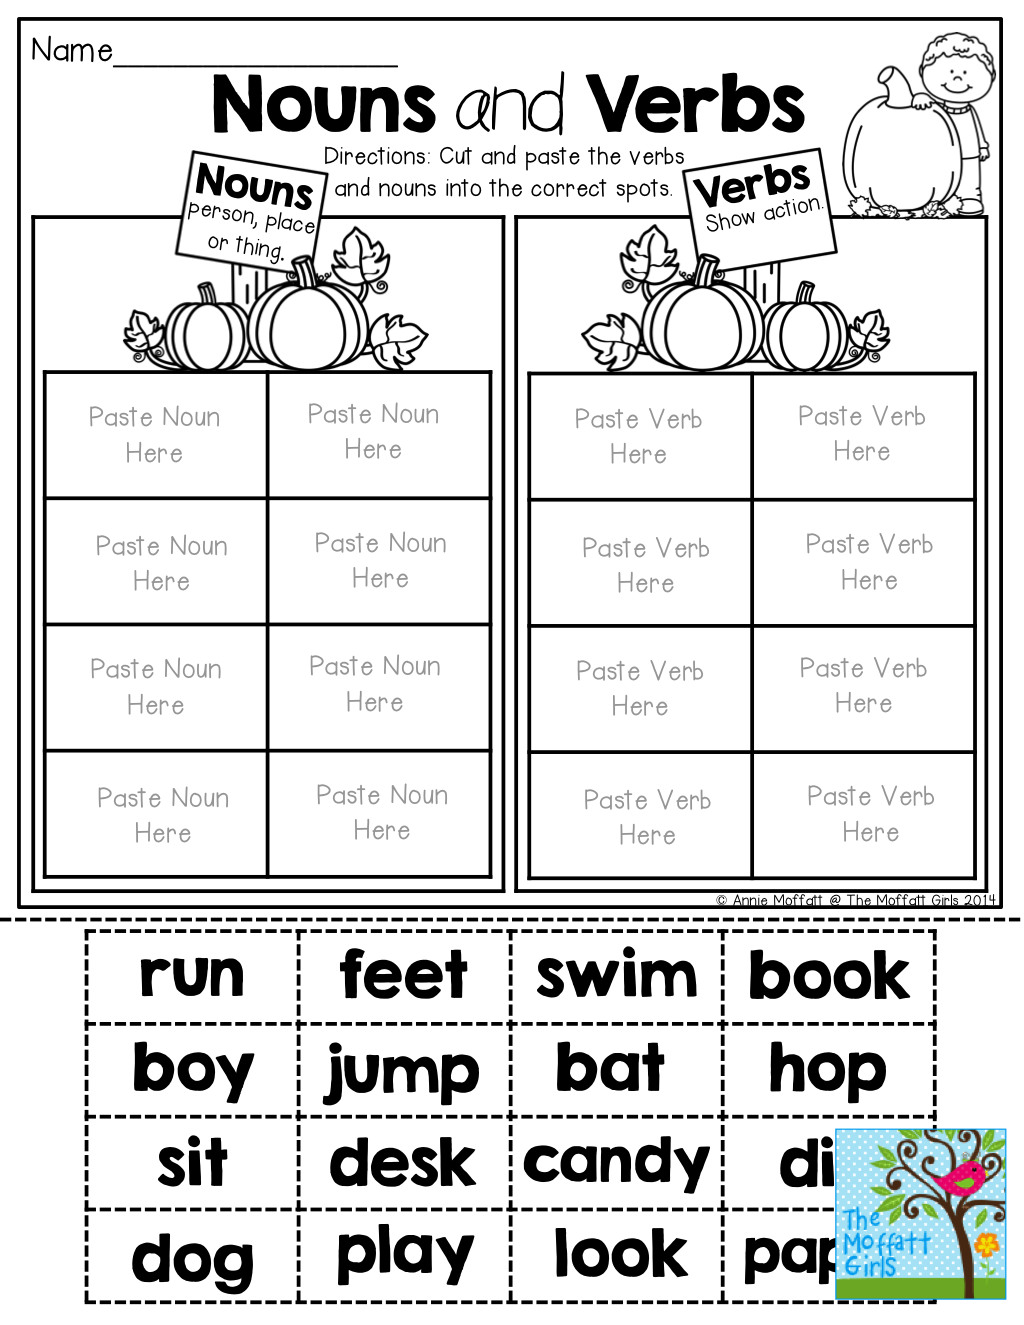 Nouns and Verbs (sorting) TONS of fun printables!